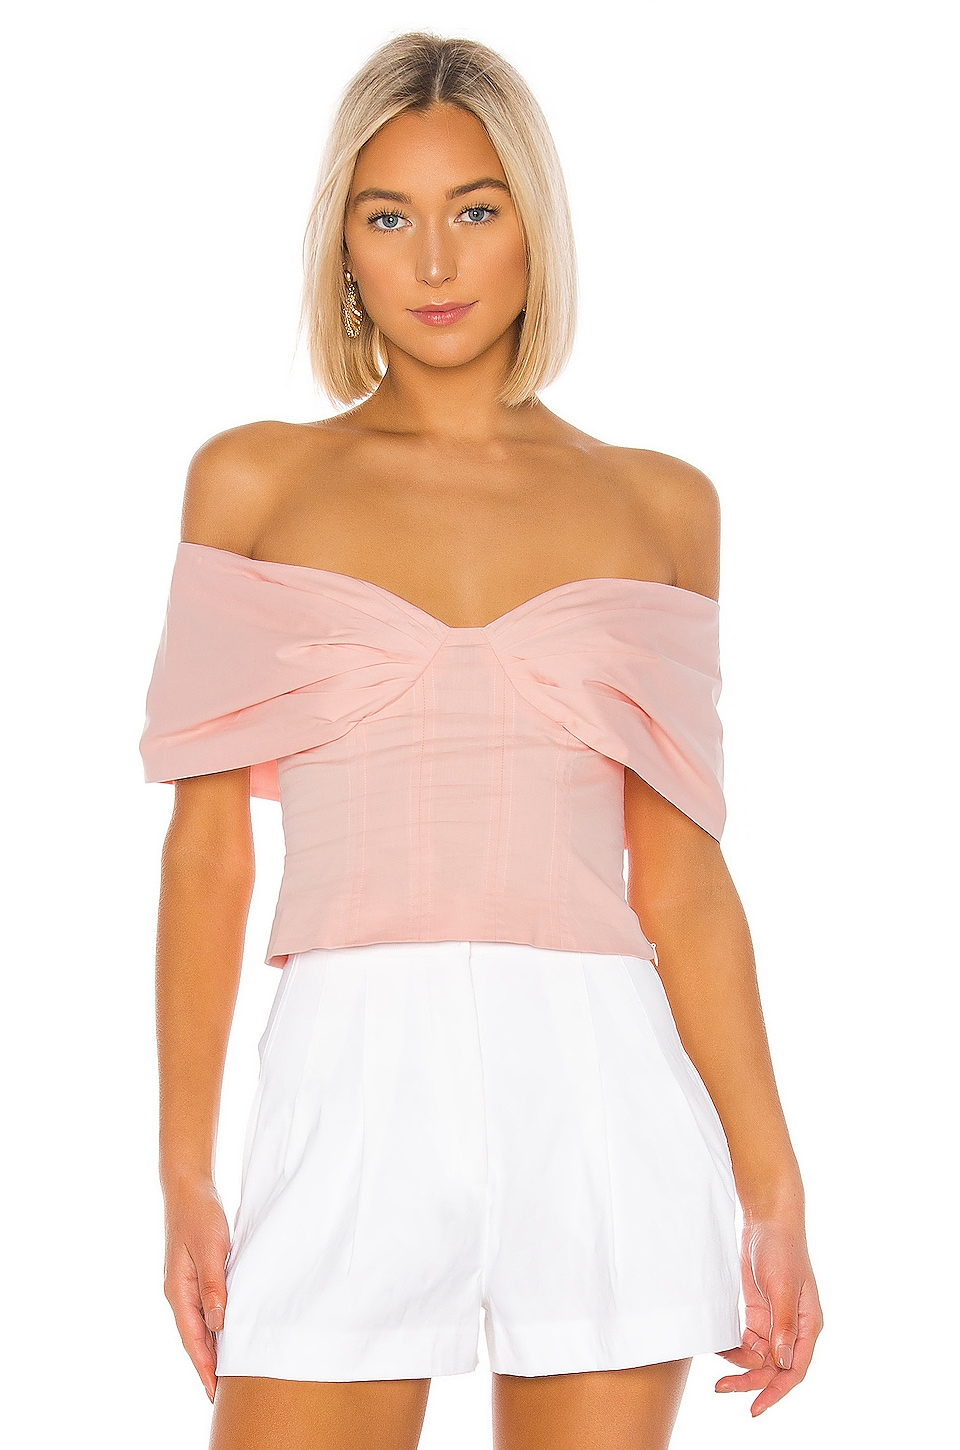 LPA Lidia Top in Baby Pink